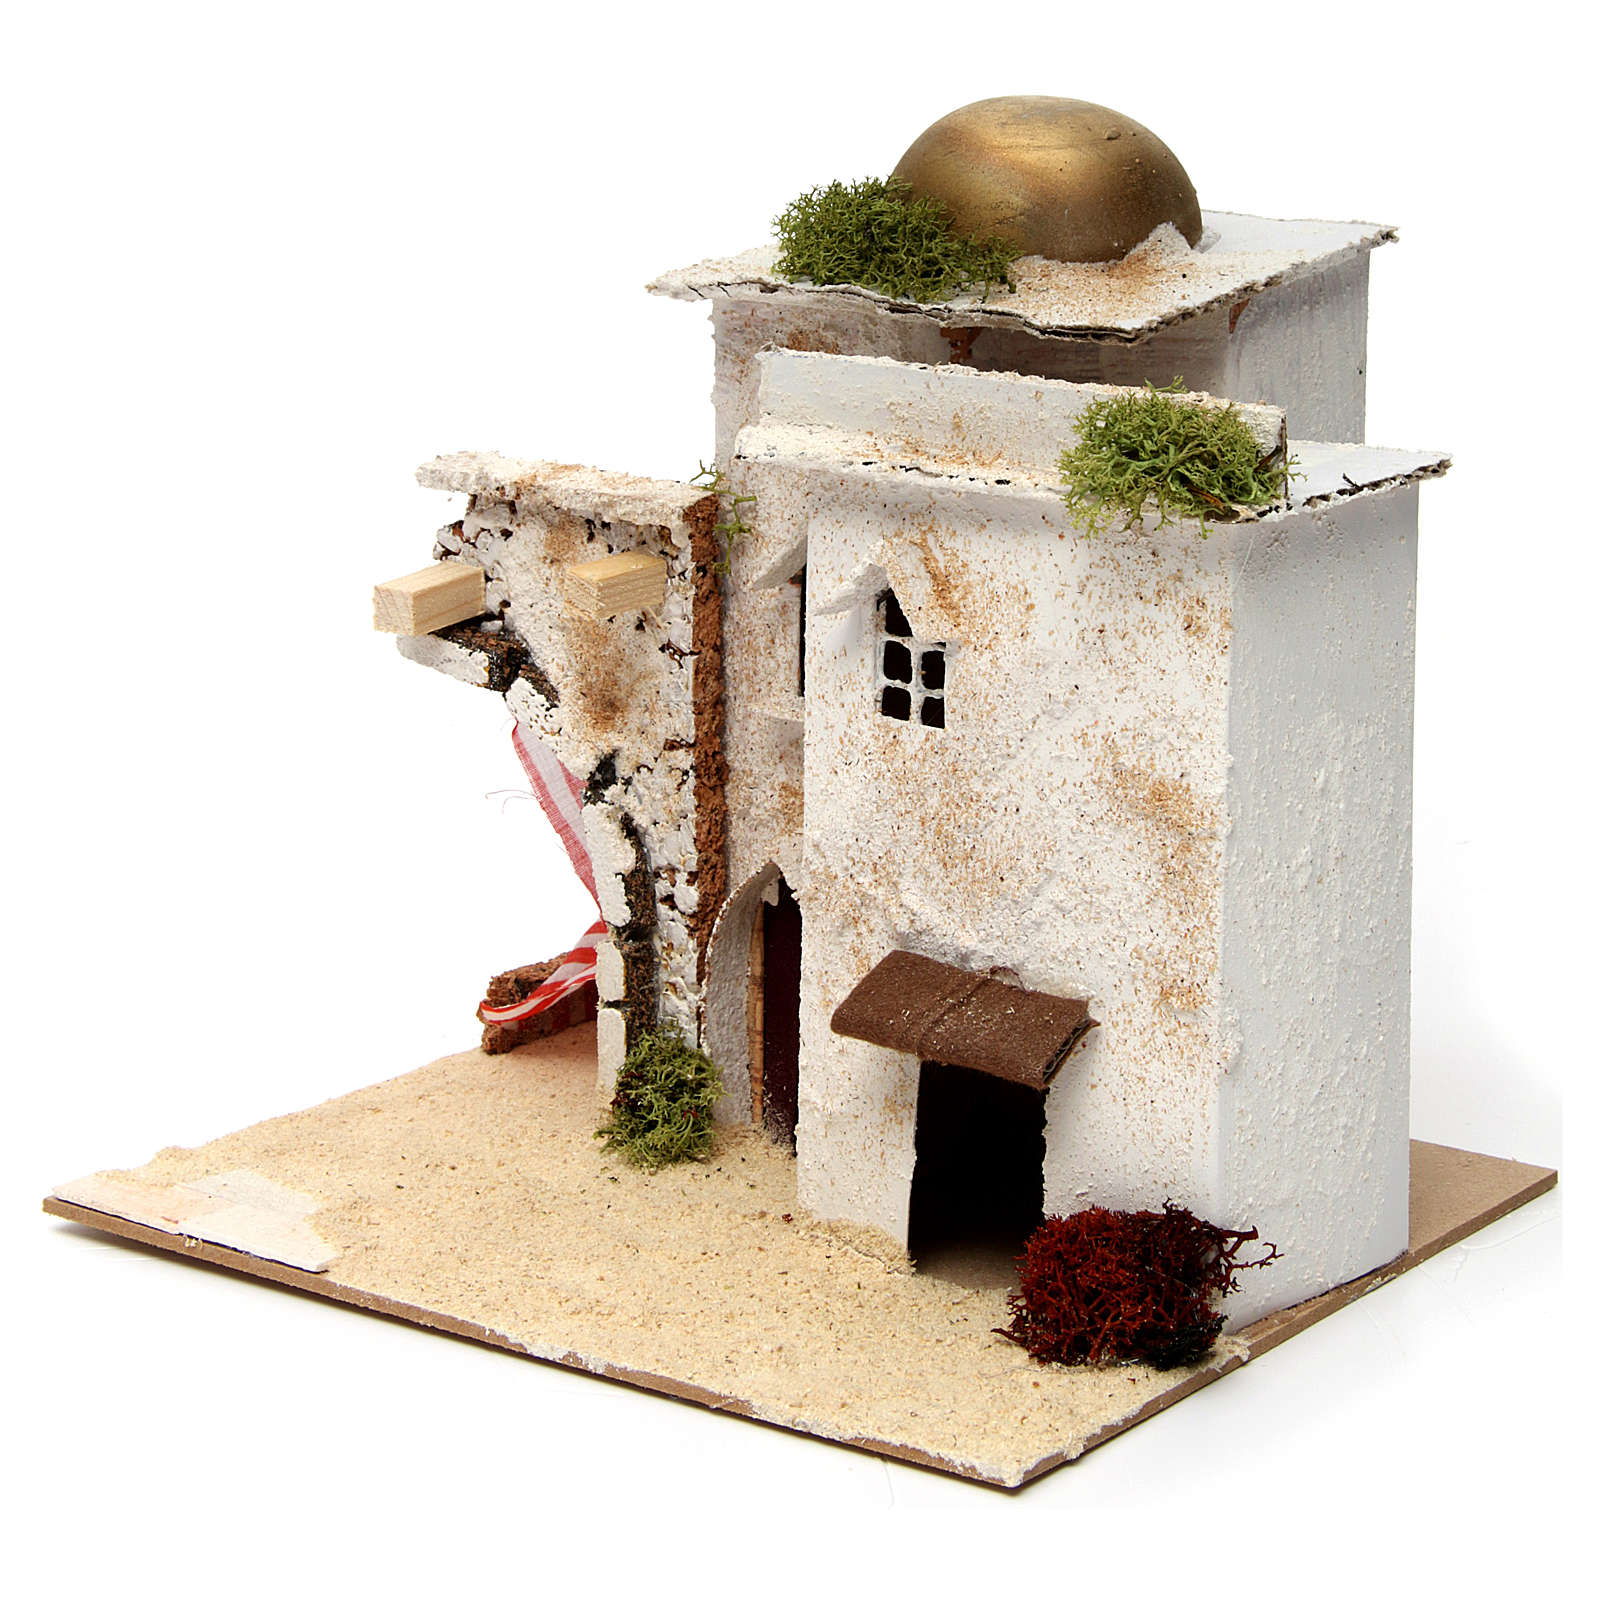 Nativity scene setting, Arab house with dome and doorways 20x25x20 cm 4